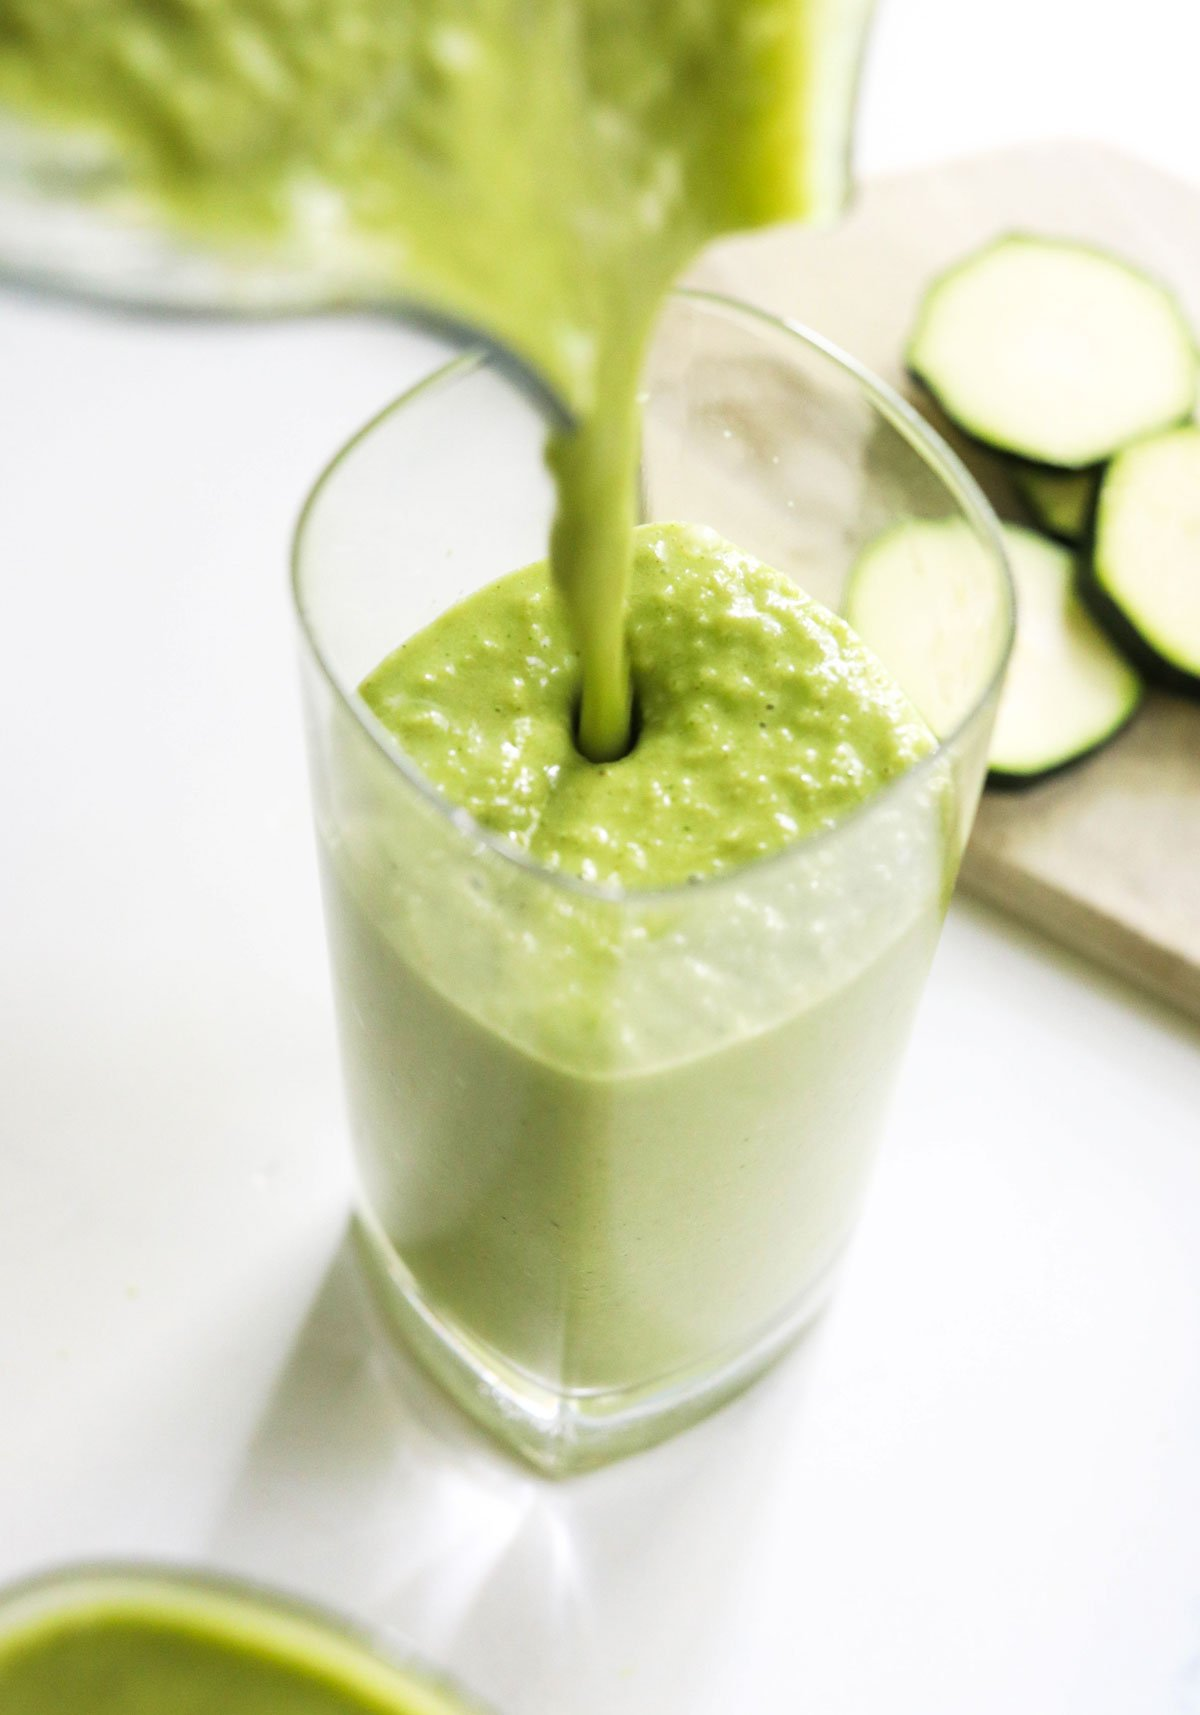 zucchini smoothie with spinach added